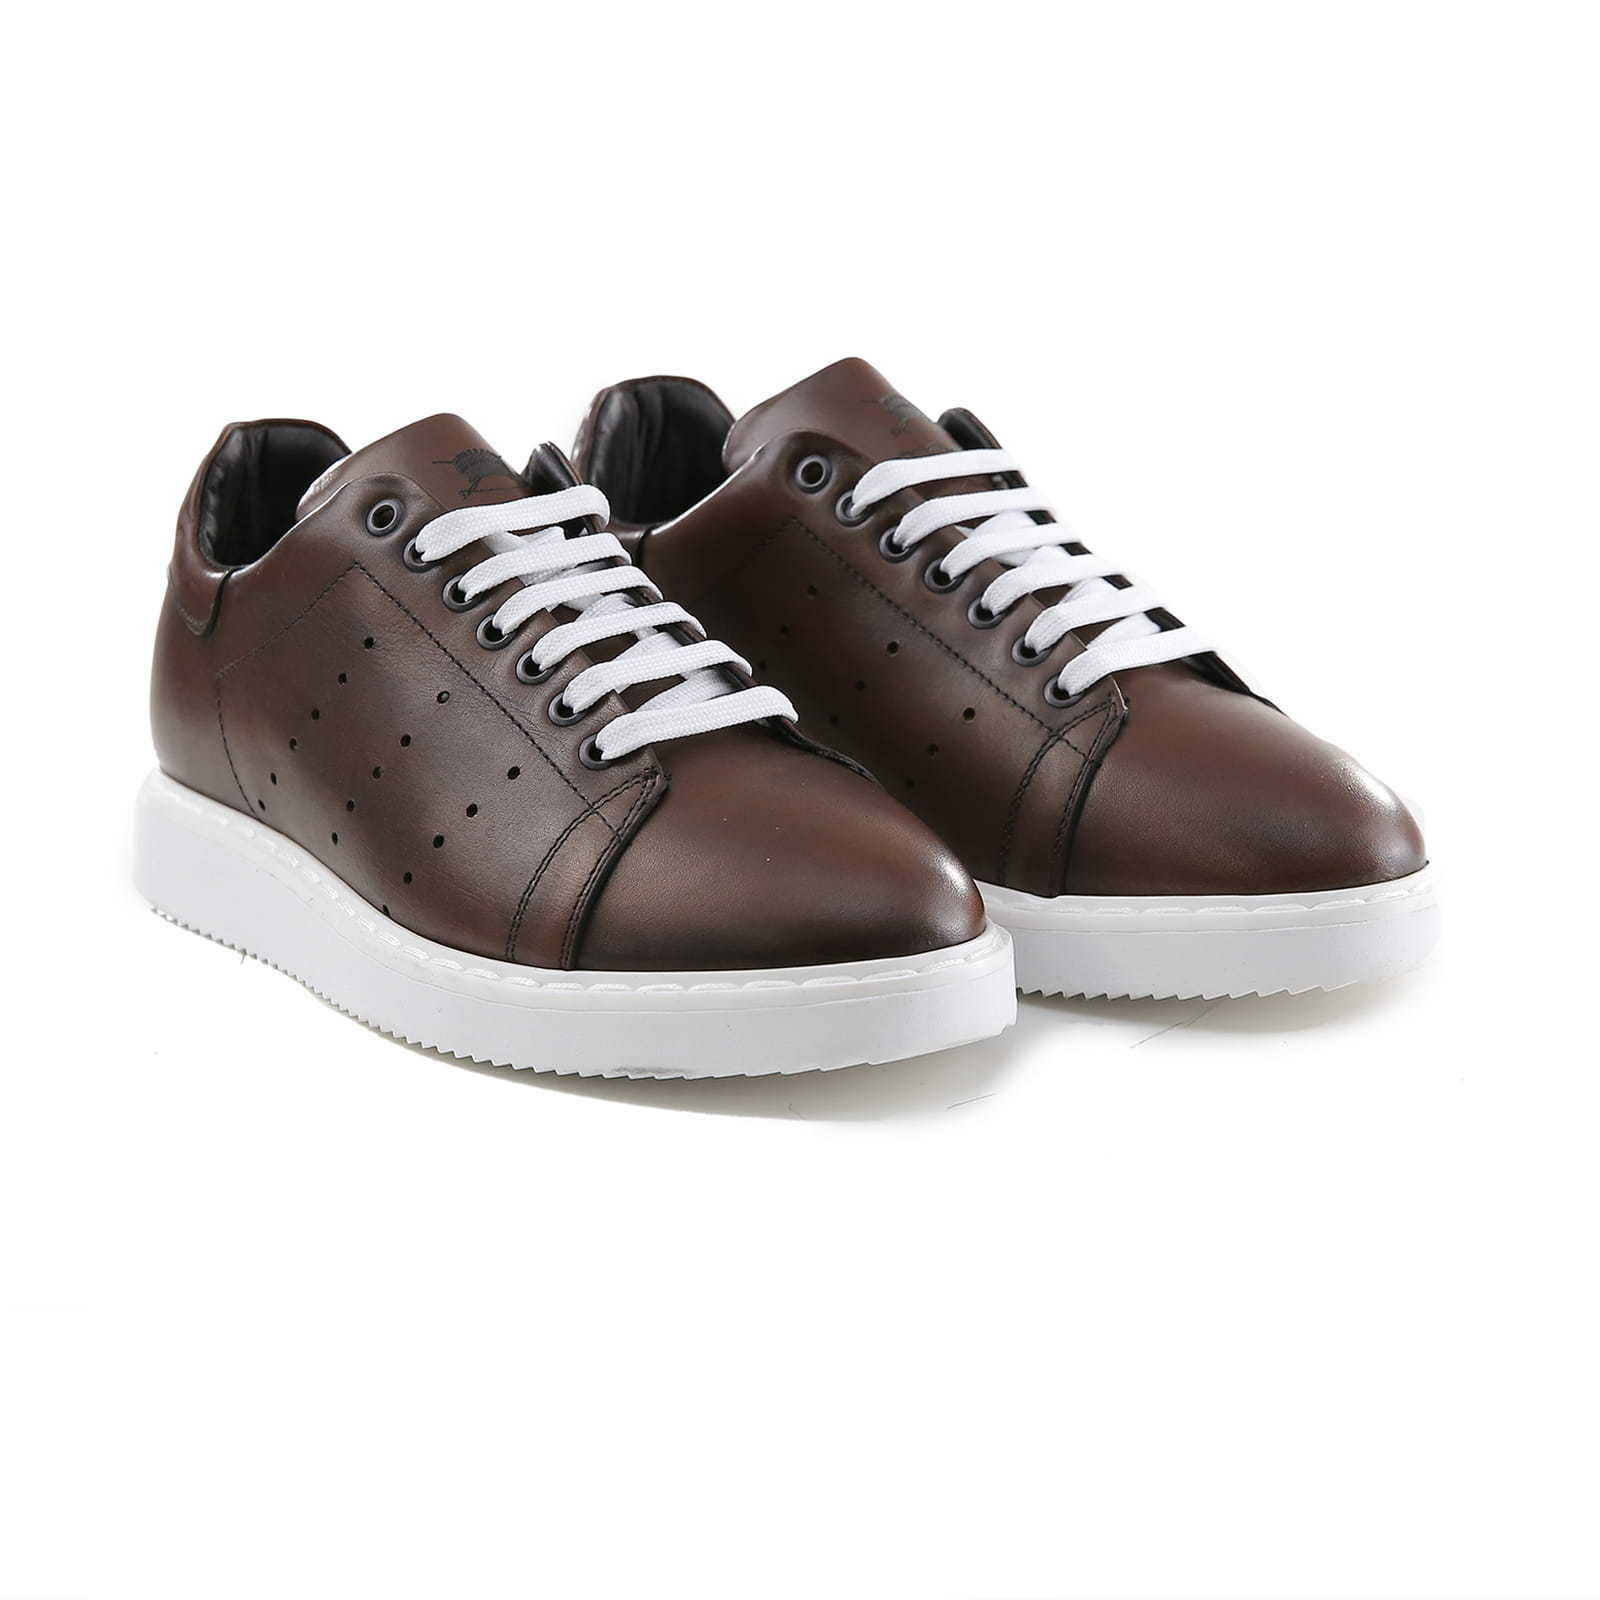 Sneakers men in Pelle color Cuoio shoes Basse Sportive men Made in